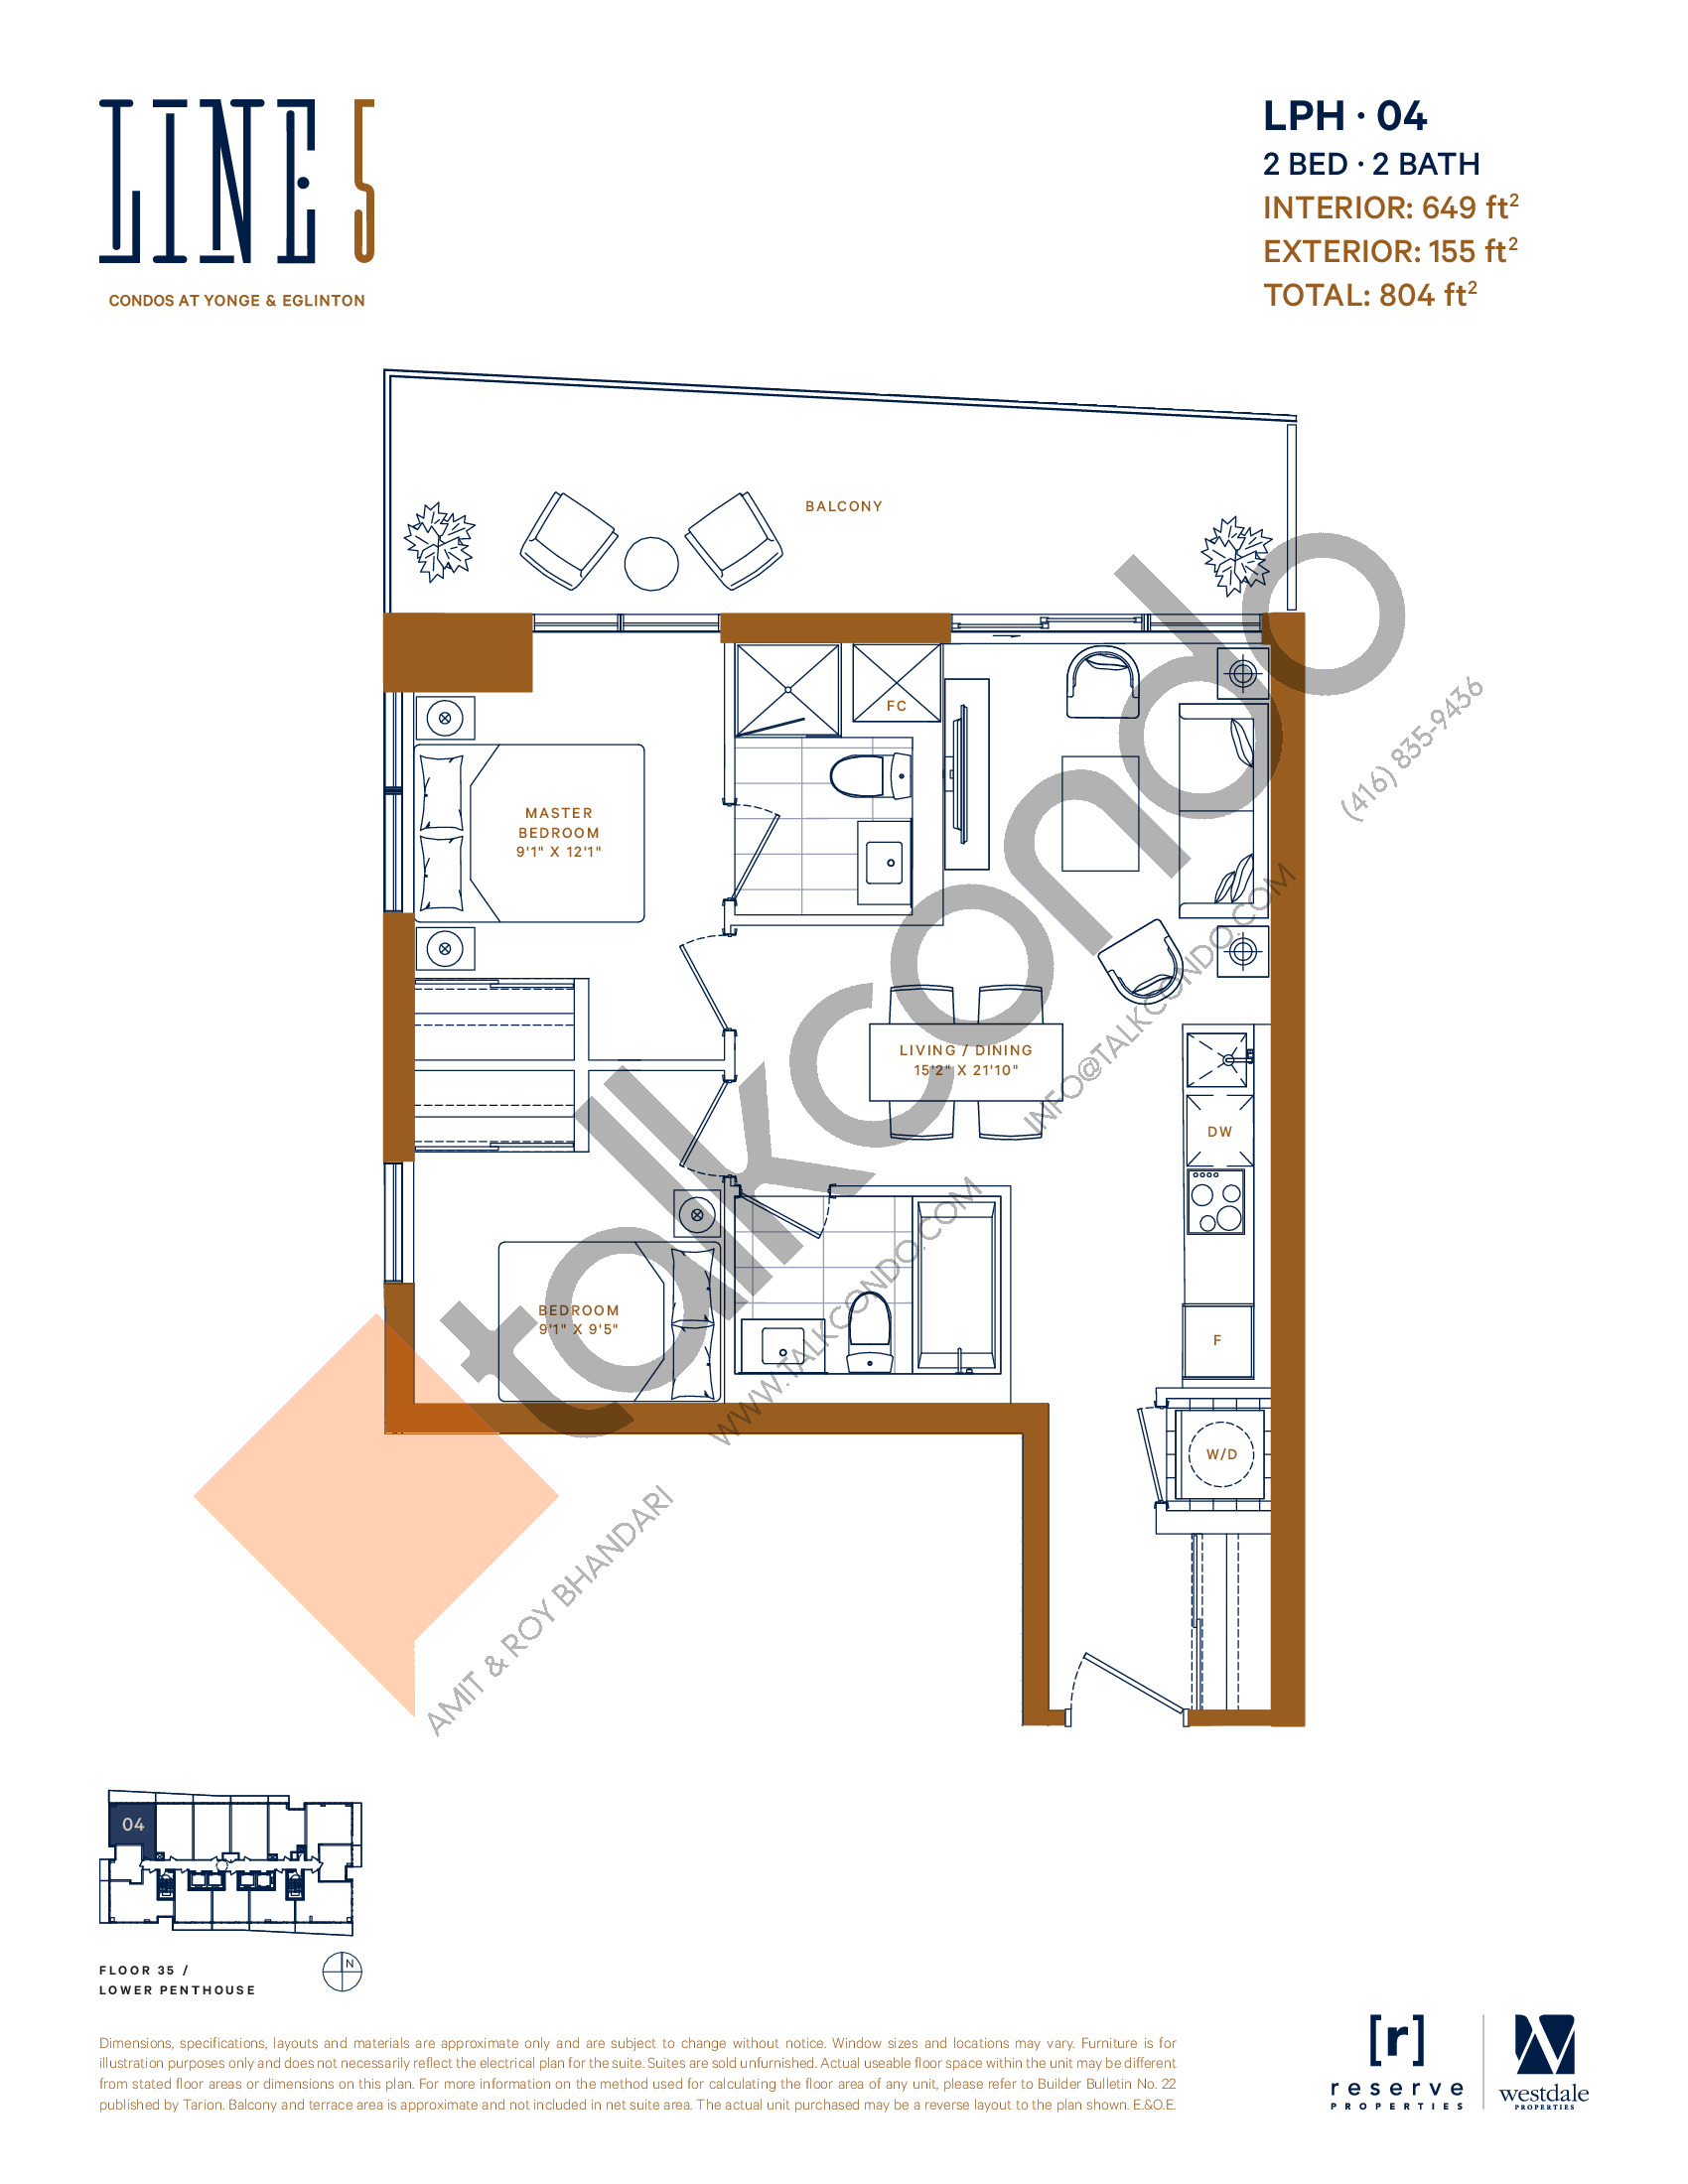 LPH-04 Floor Plan at Line 5 South Tower Condos - 649 sq.ft